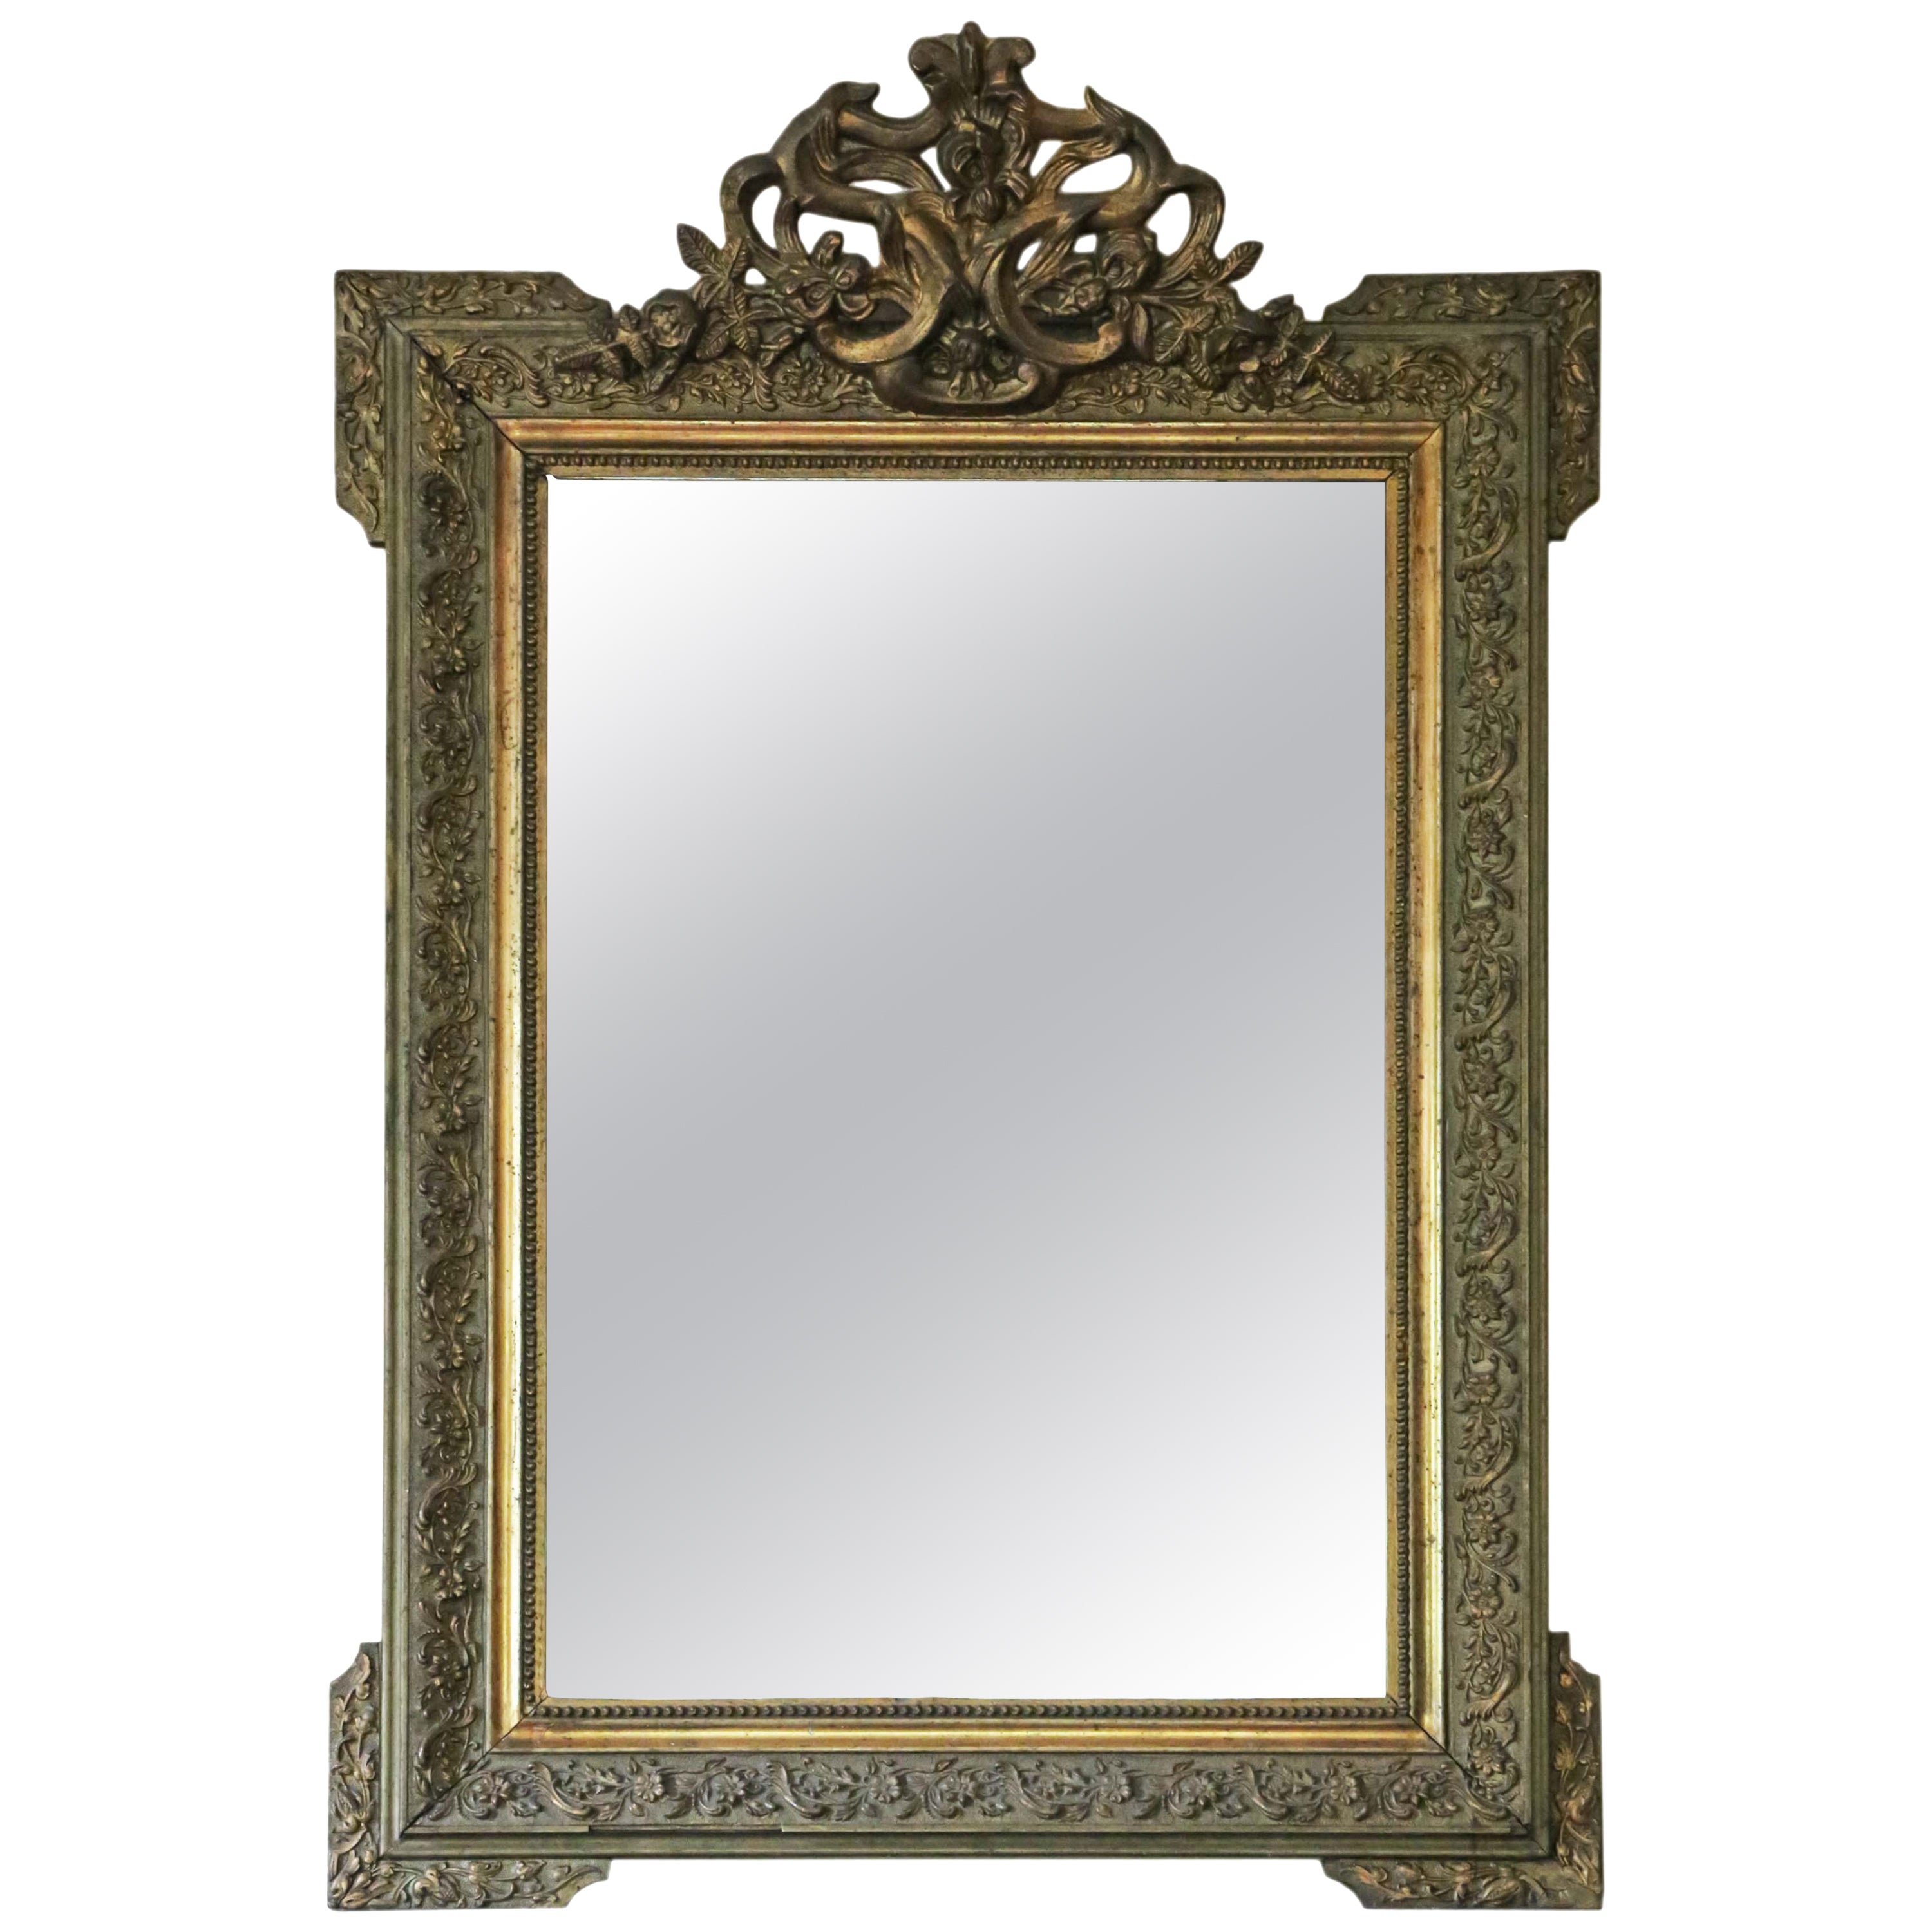 Antique Large 19th Century French Gilt Overmantle Wall Mirror